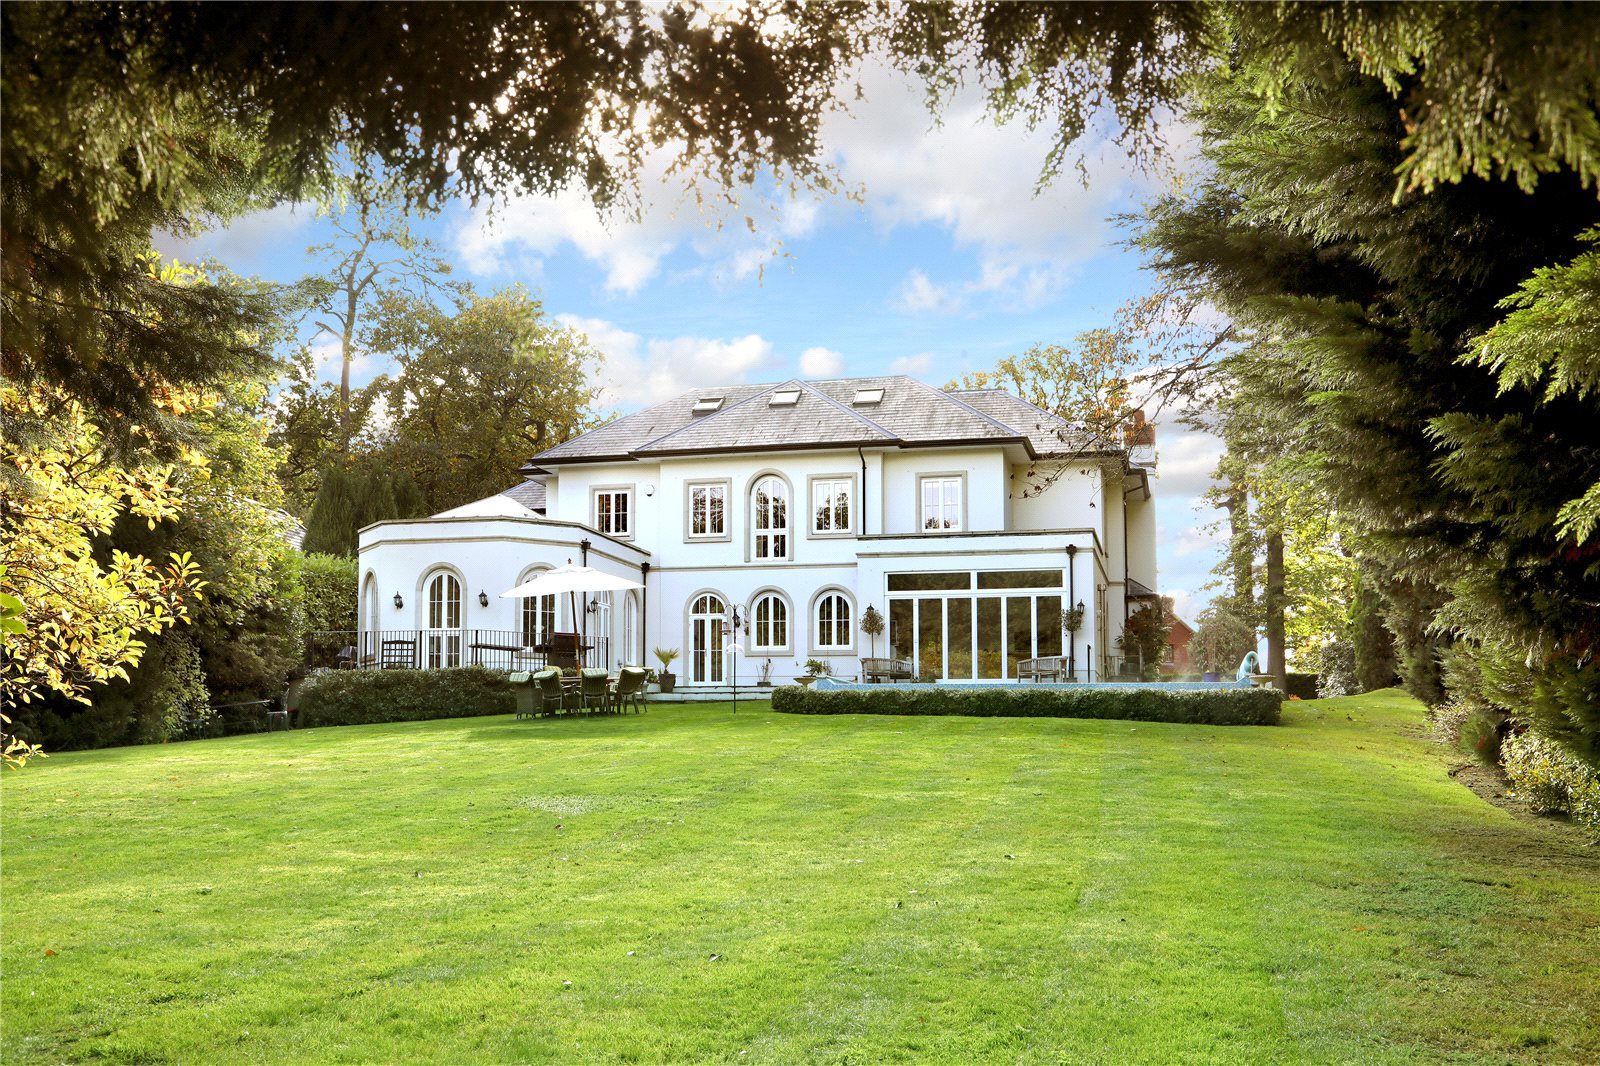 Single Family Home for Sale at Hancocks Mount, Sunningdale, Berkshire, SL5 Sunningdale, England